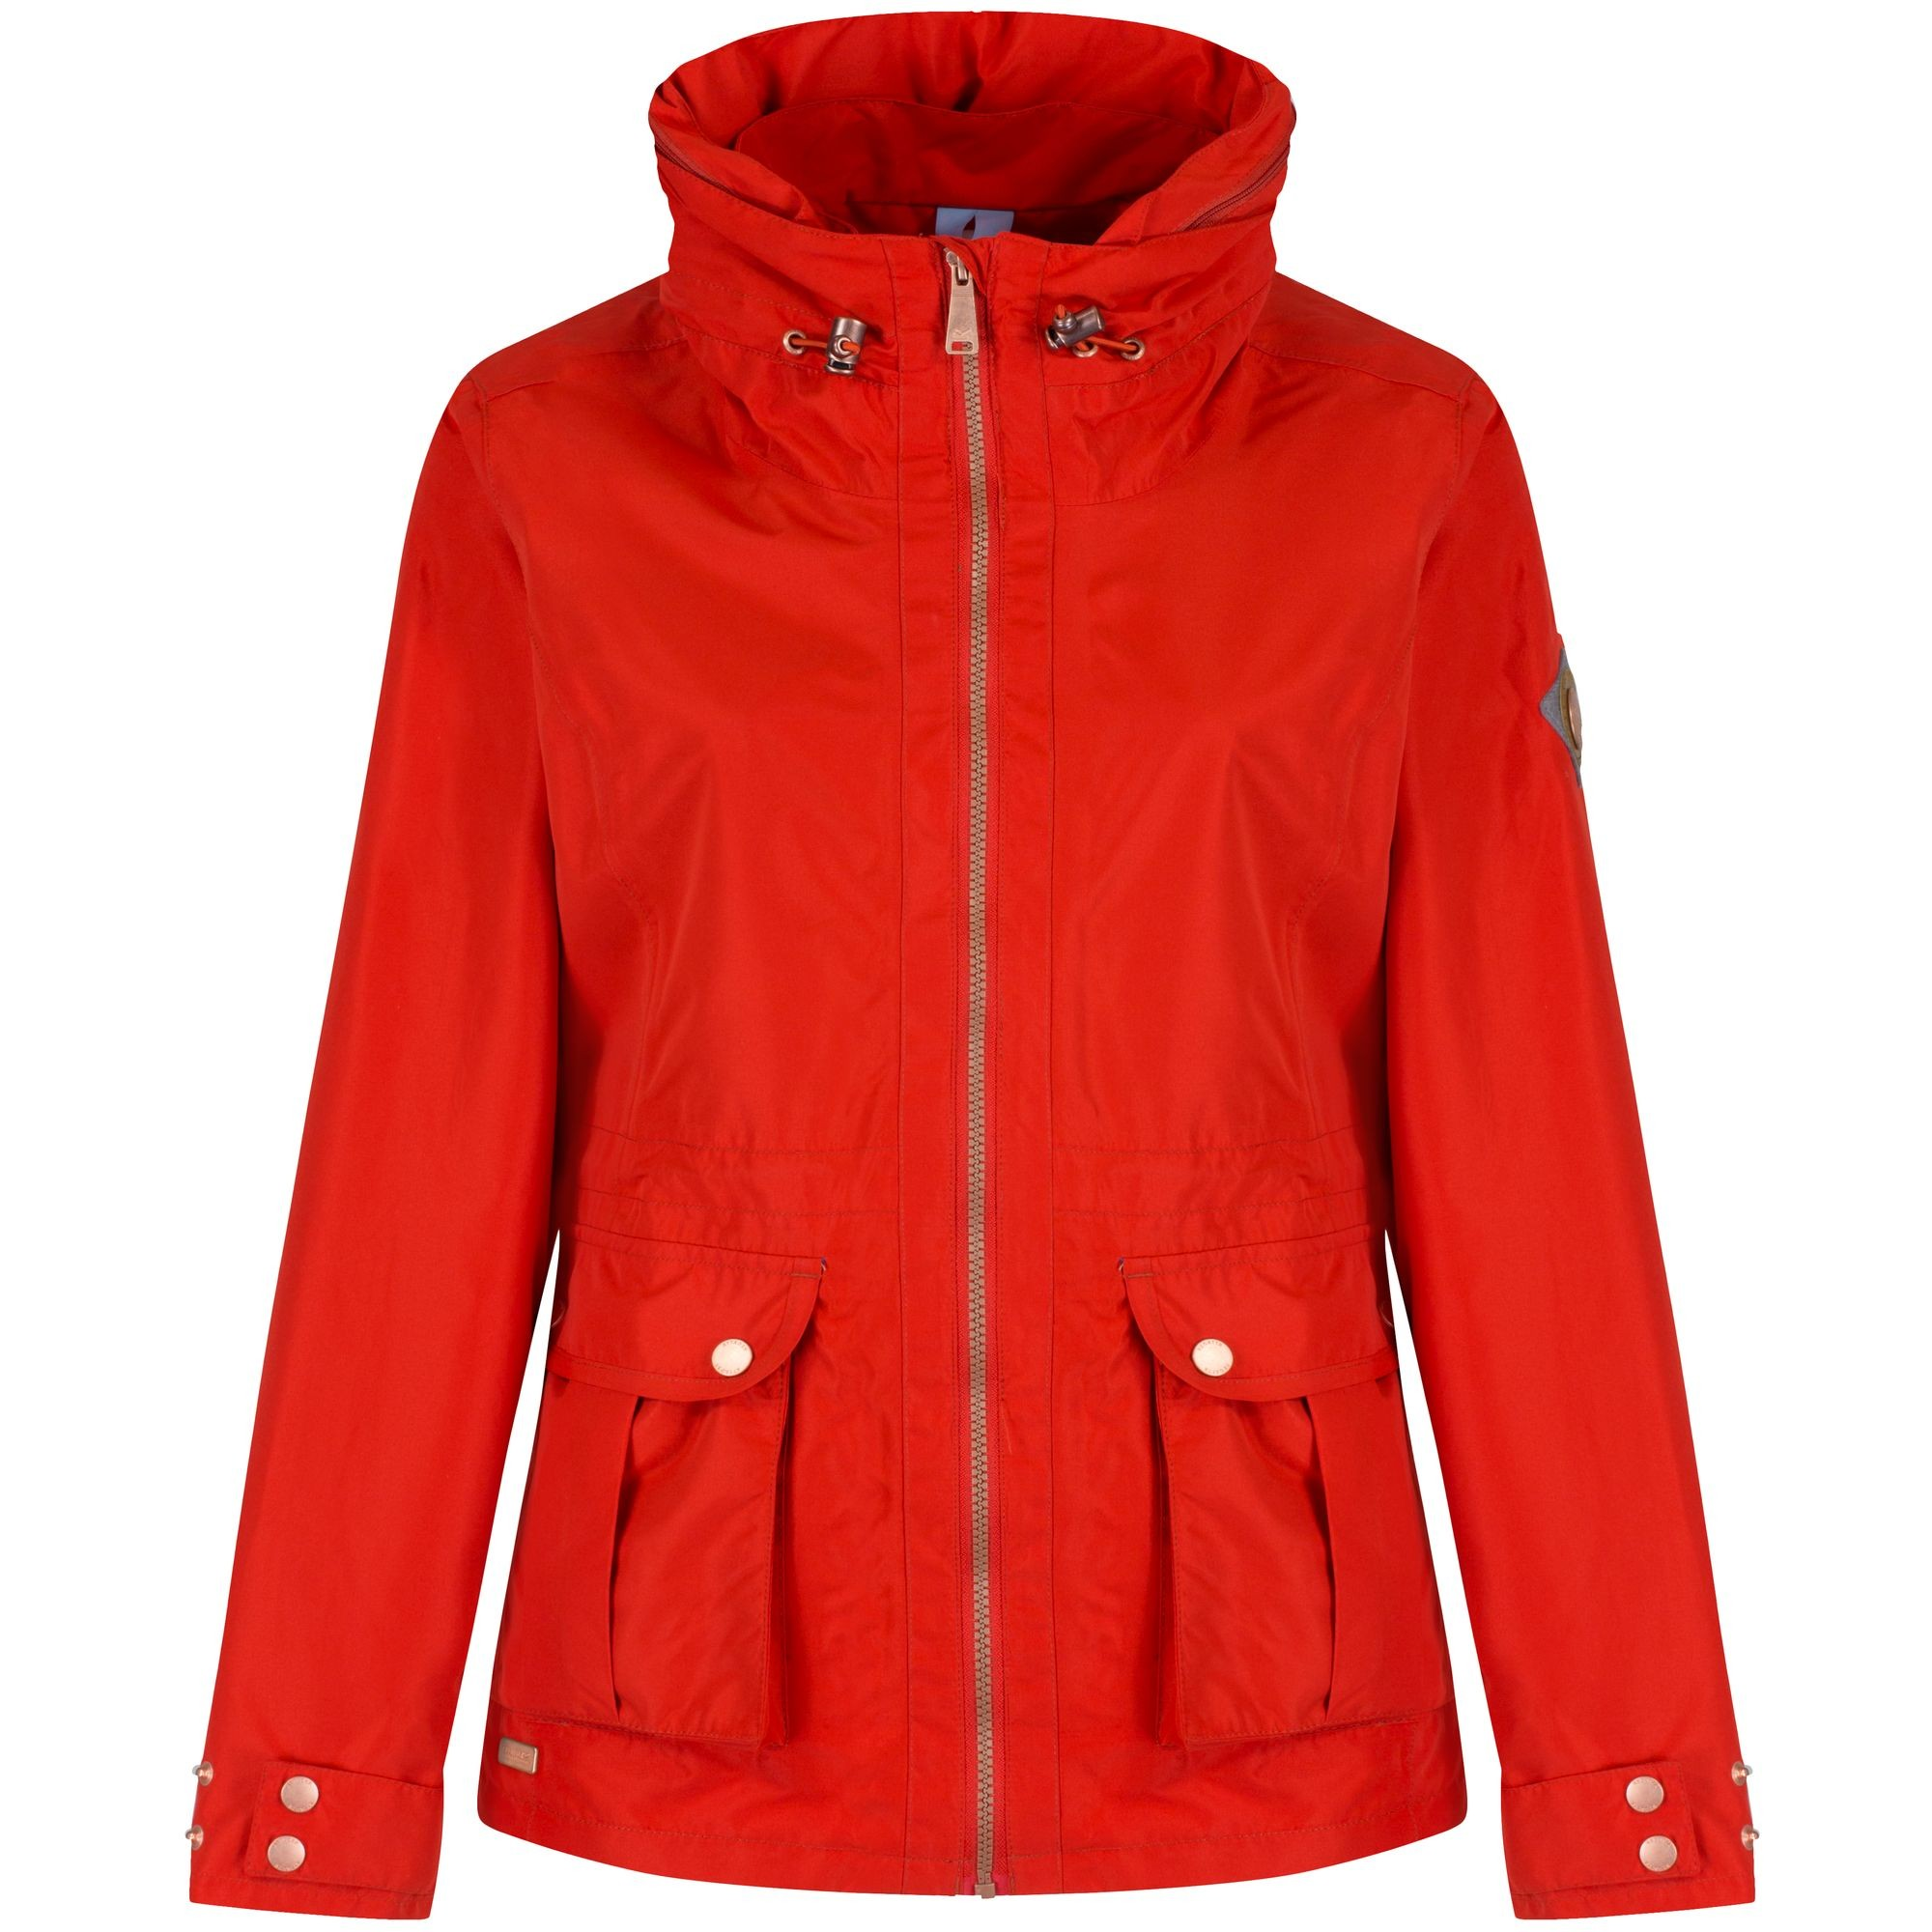 Regatta Great Outdoors Womens/Ladies Nardia Waterproof Rain Jacket